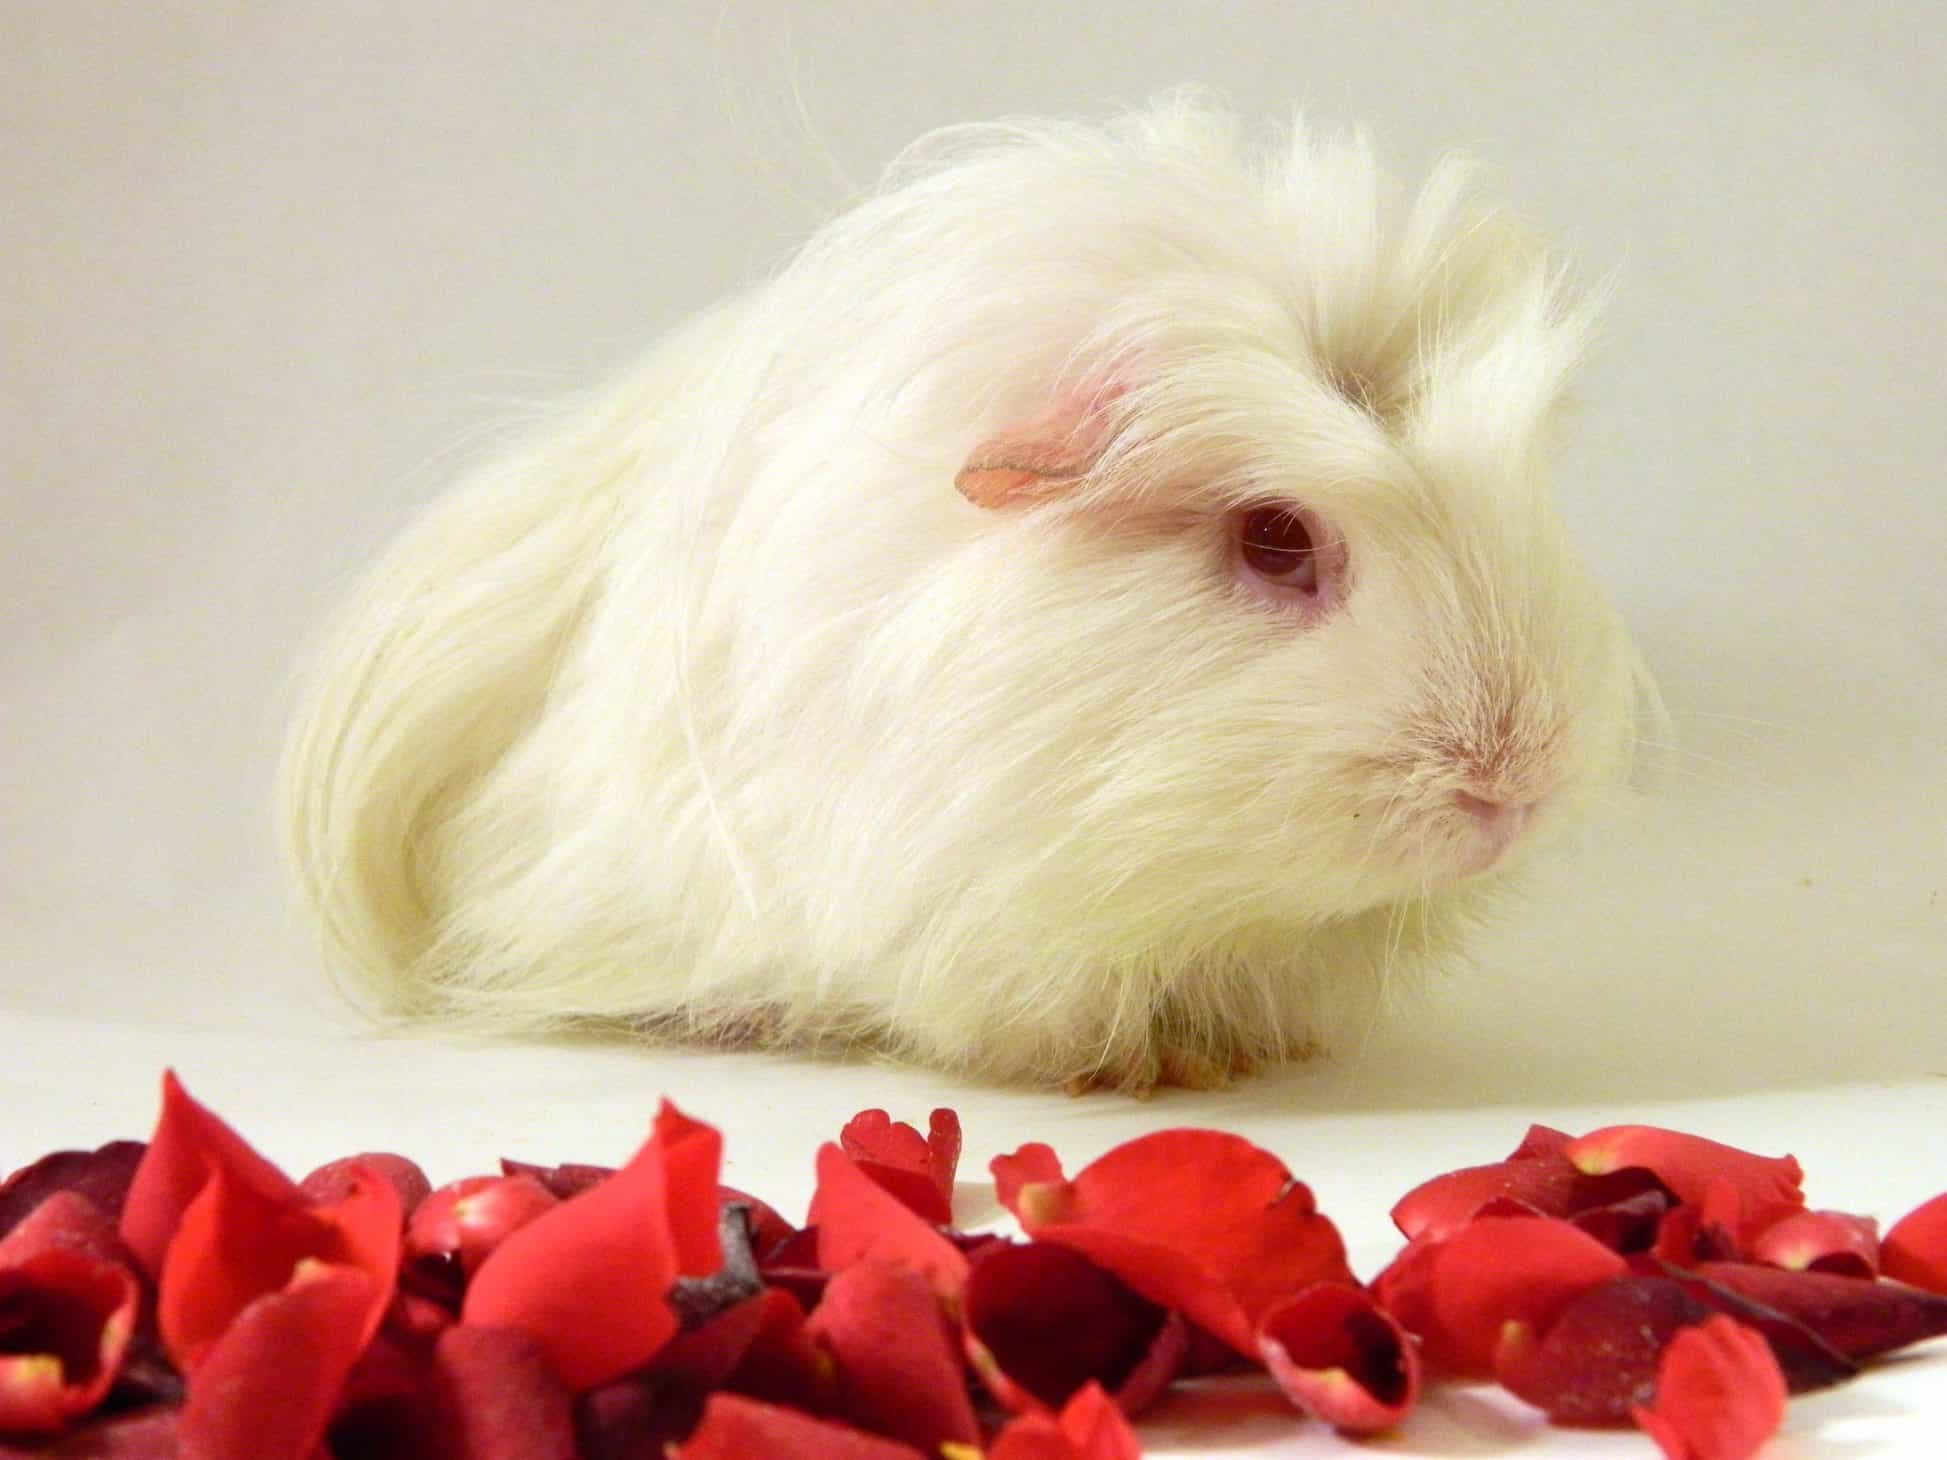 Cute, pig, piglet, fluffy, rose, red rose, camera, guinea pig, sweet, aww, photography